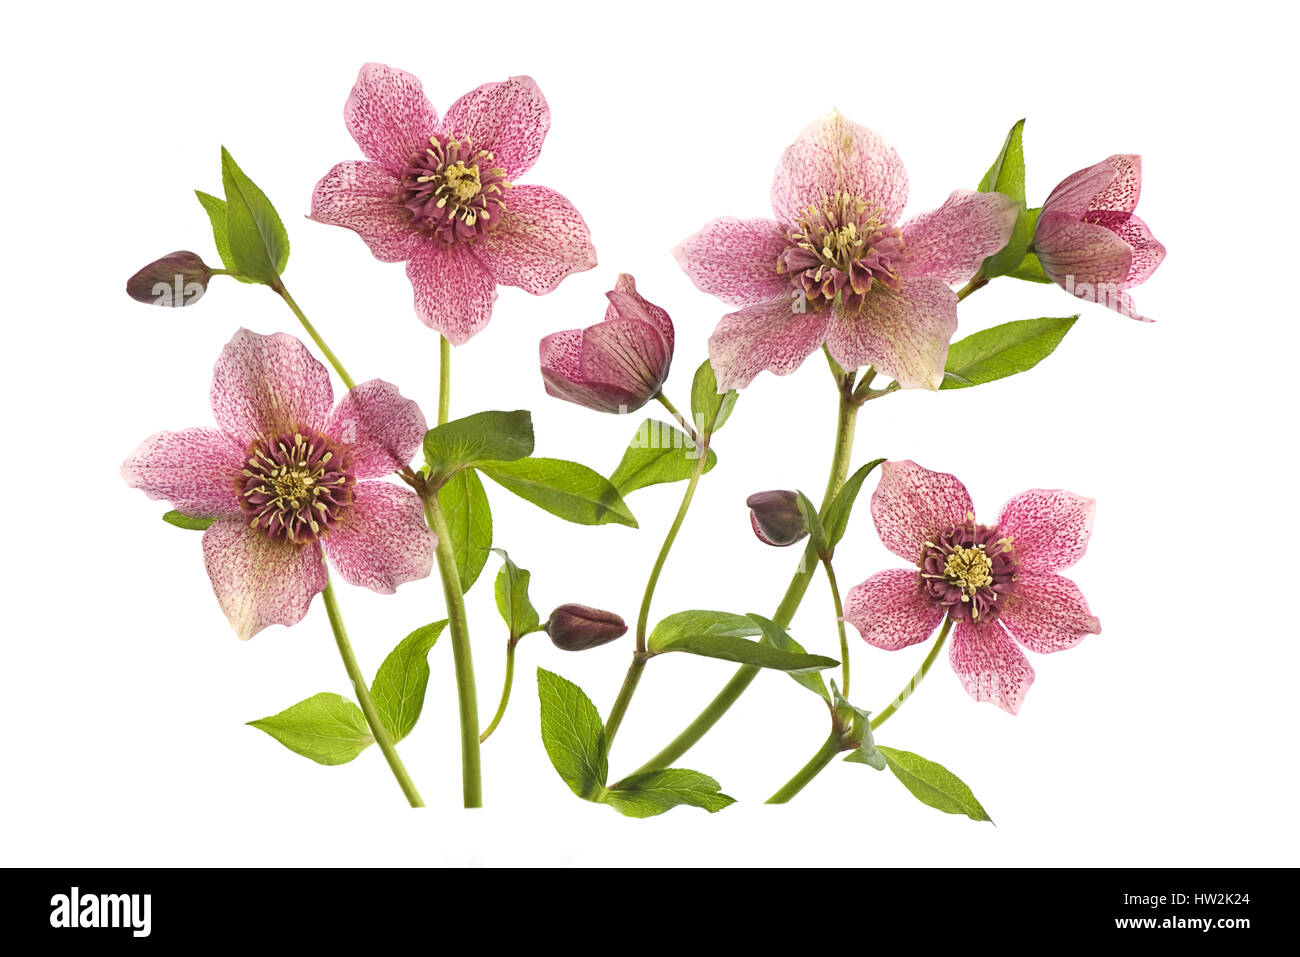 High key image of the beautiful spring flowers of helleborus tutu high key image of the beautiful spring flowers of helleborus tutu also known as the lenten rose taken against a white background izmirmasajfo